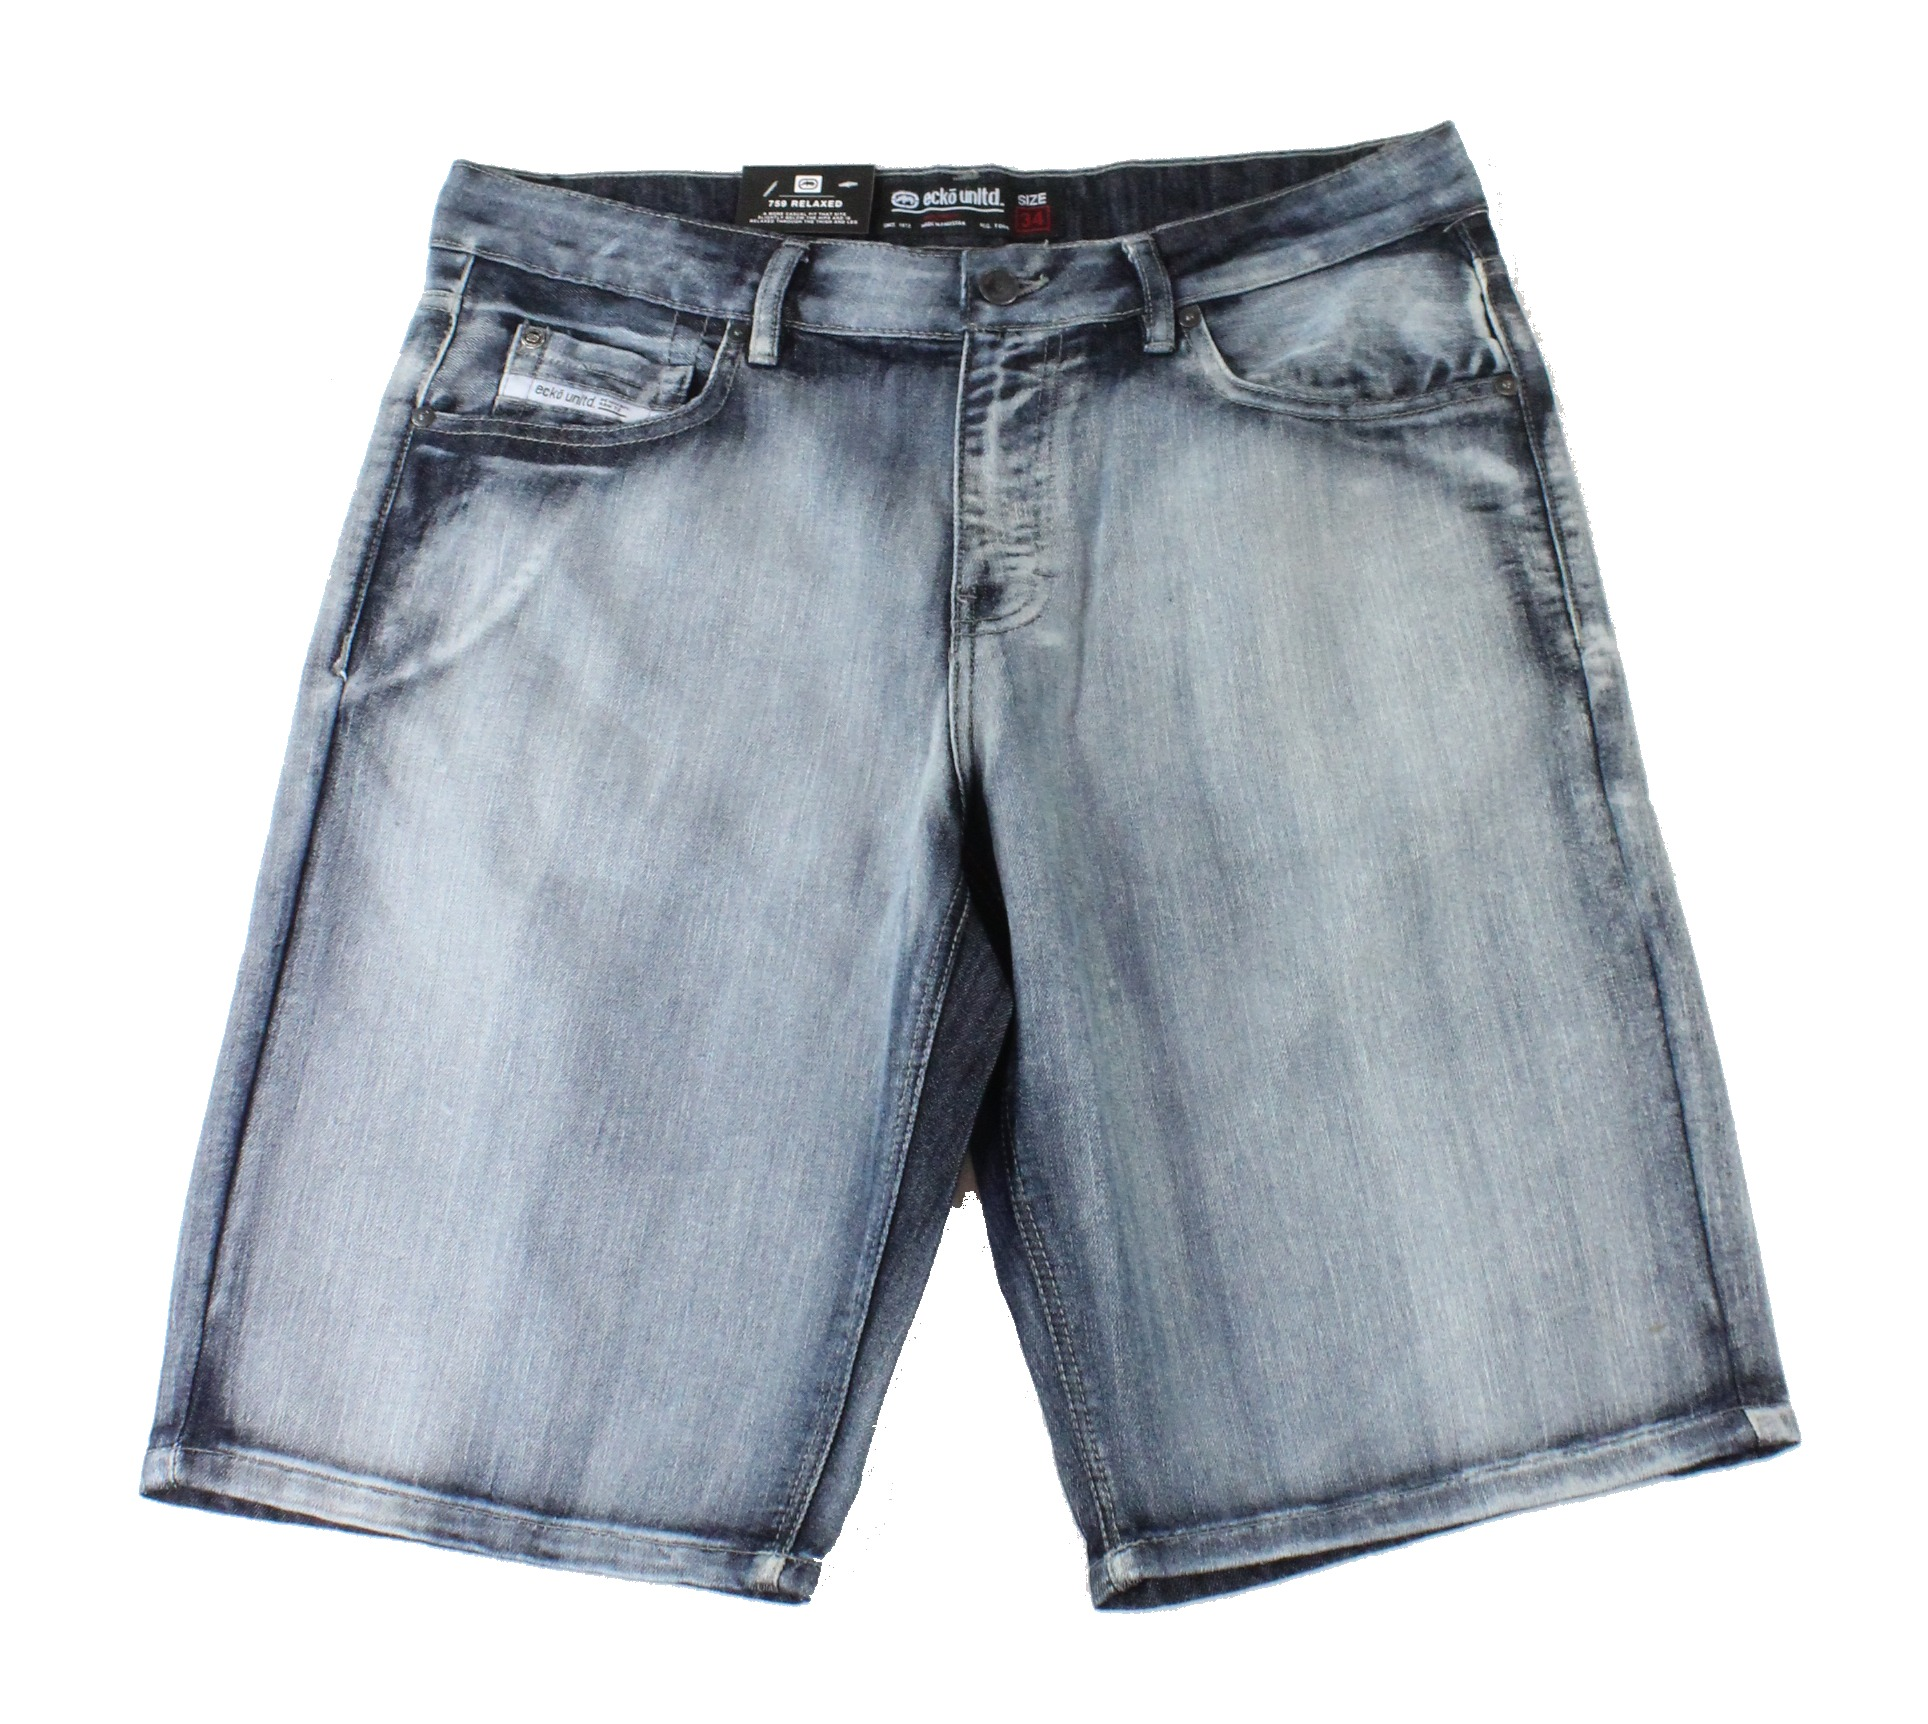 New-Ecko-Unltd-Mens-Shorts-Washed-Blue-Size-34-Denim-759-Relaxed-Fit-48-234